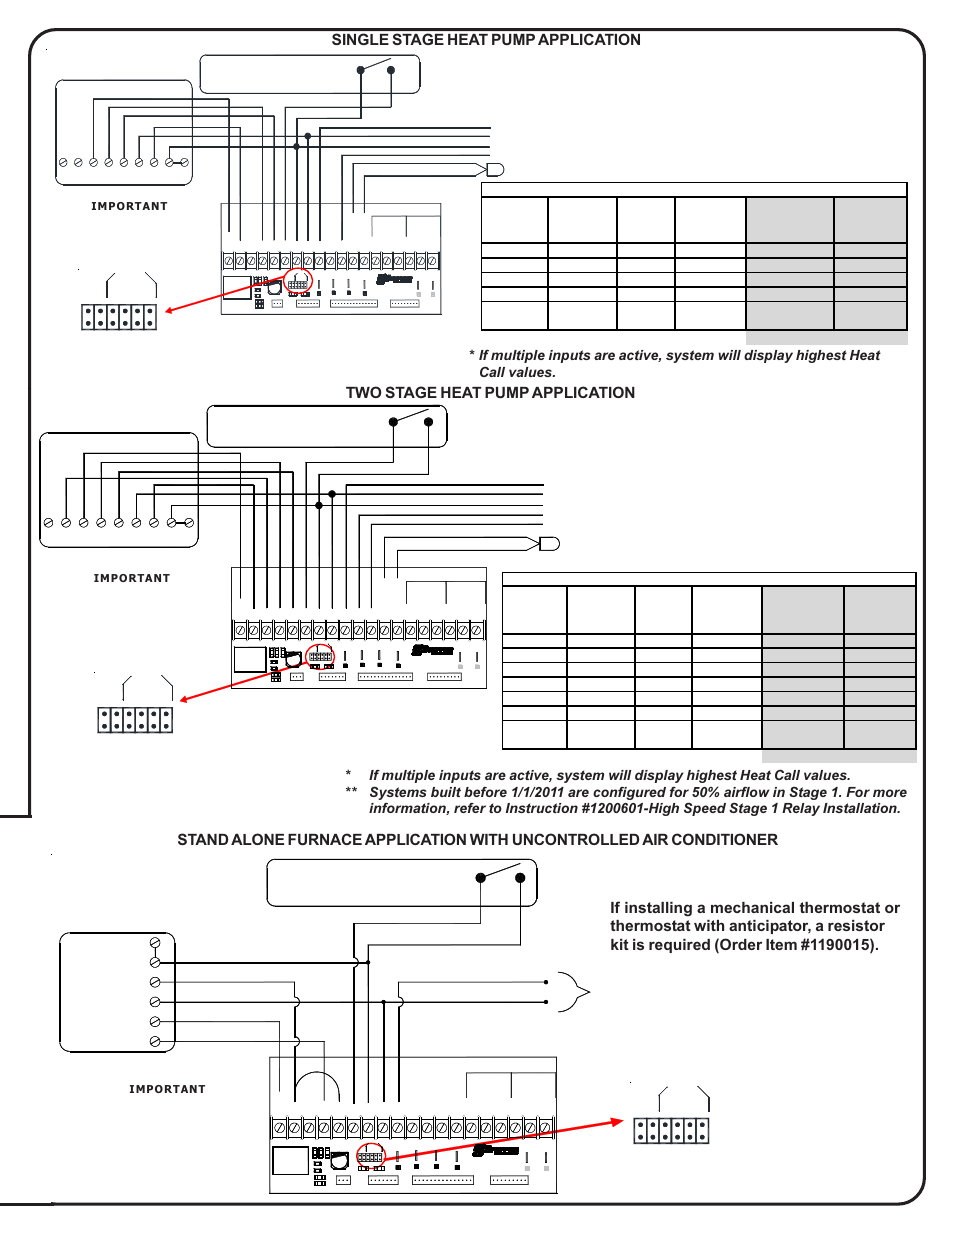 hight resolution of two stage heat pump application rc w y y1 compressor y2 compressor stage 2 steffes 5140 simplified installation guide user manual page 7 8